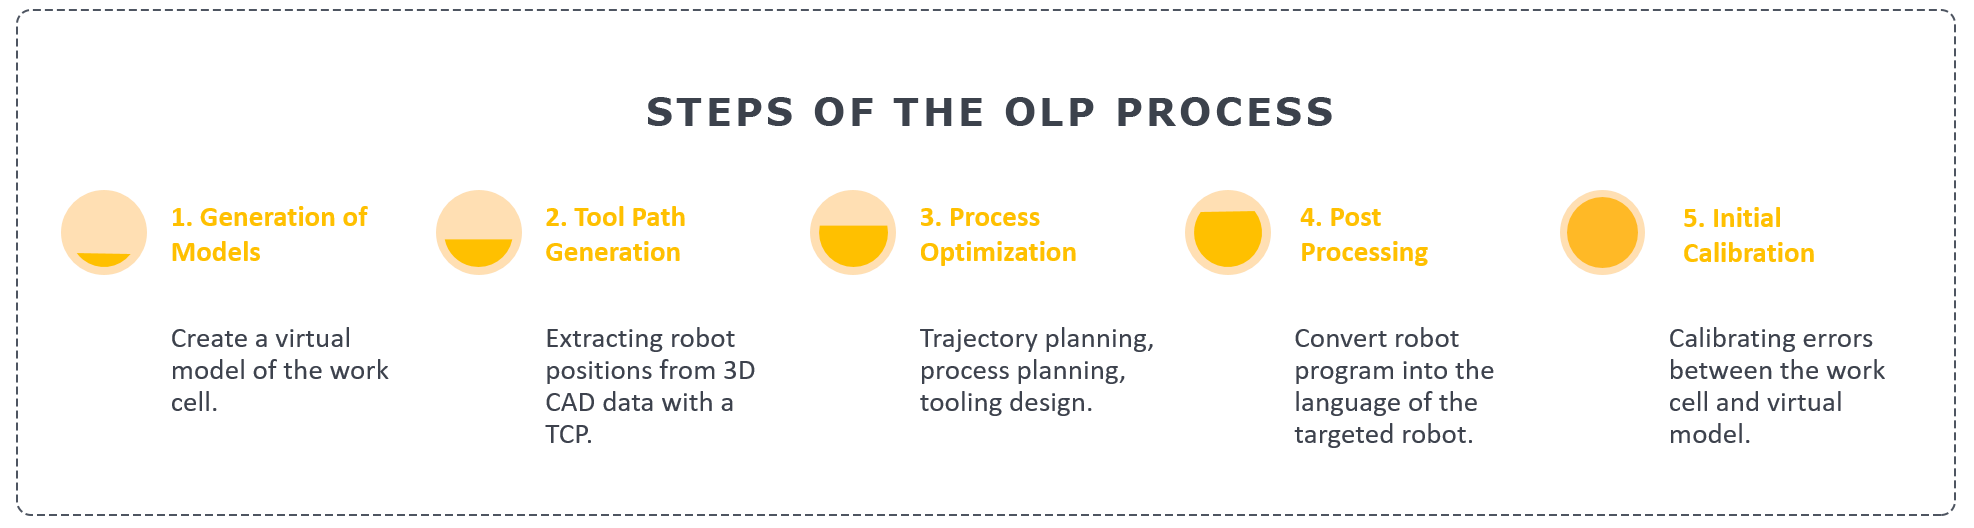 The five steps of the OLP process